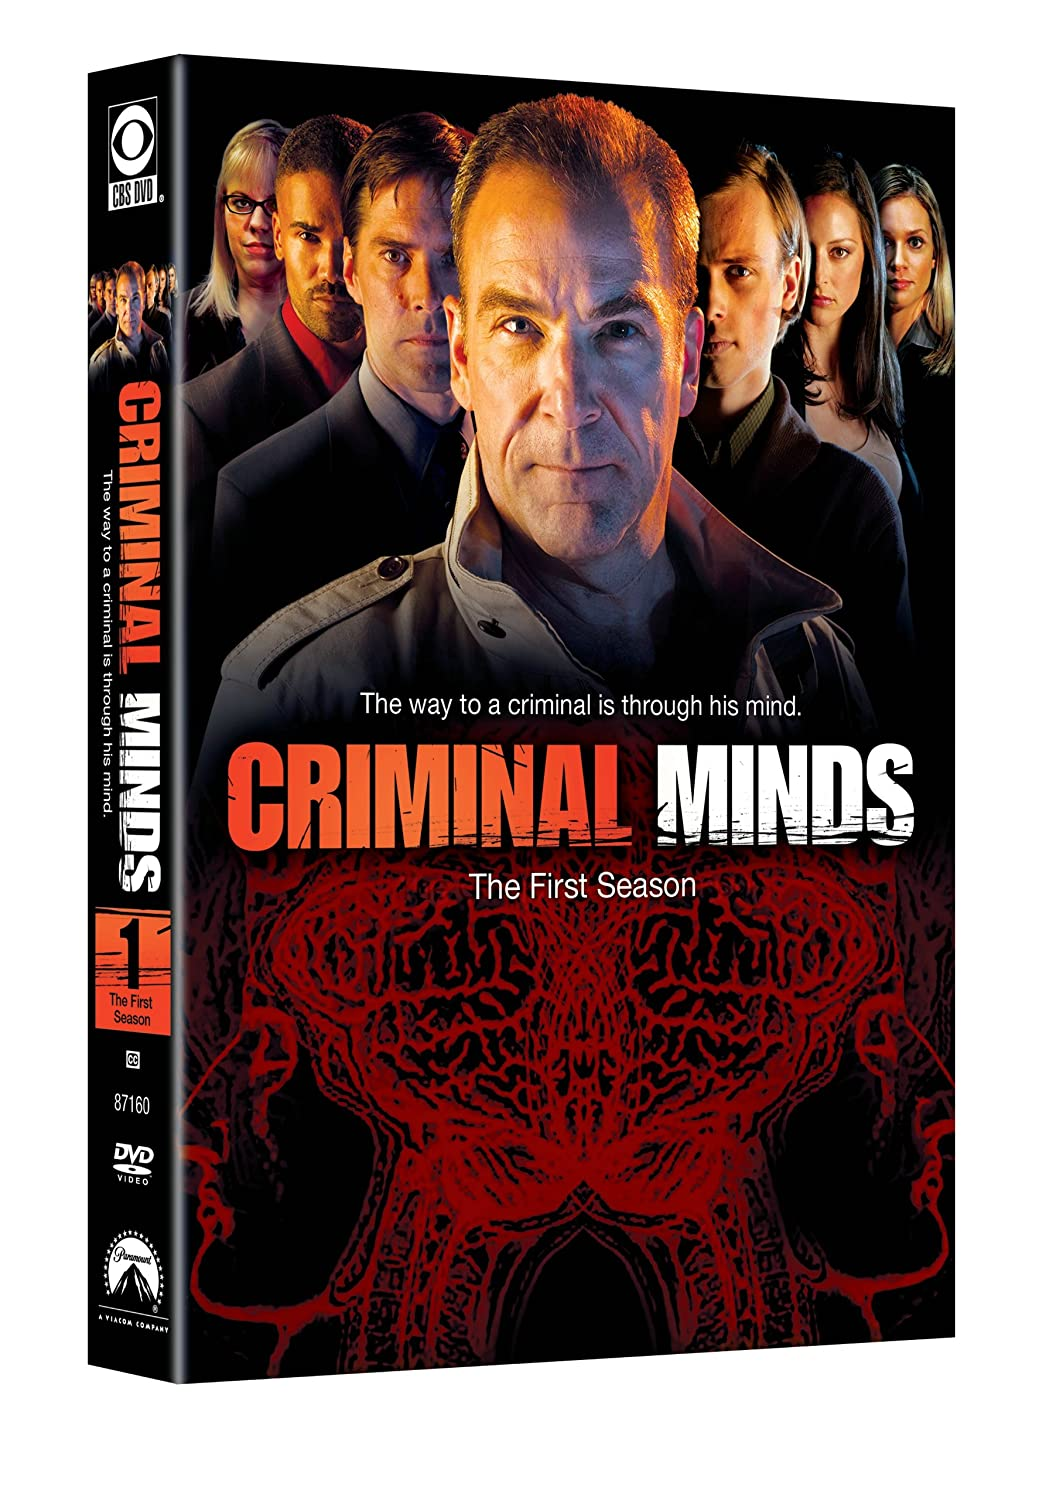 Criminal Minds: The First Season Rachel Nichols Jeanne Tripplehorn Nicholas Brendon Paget Brewster